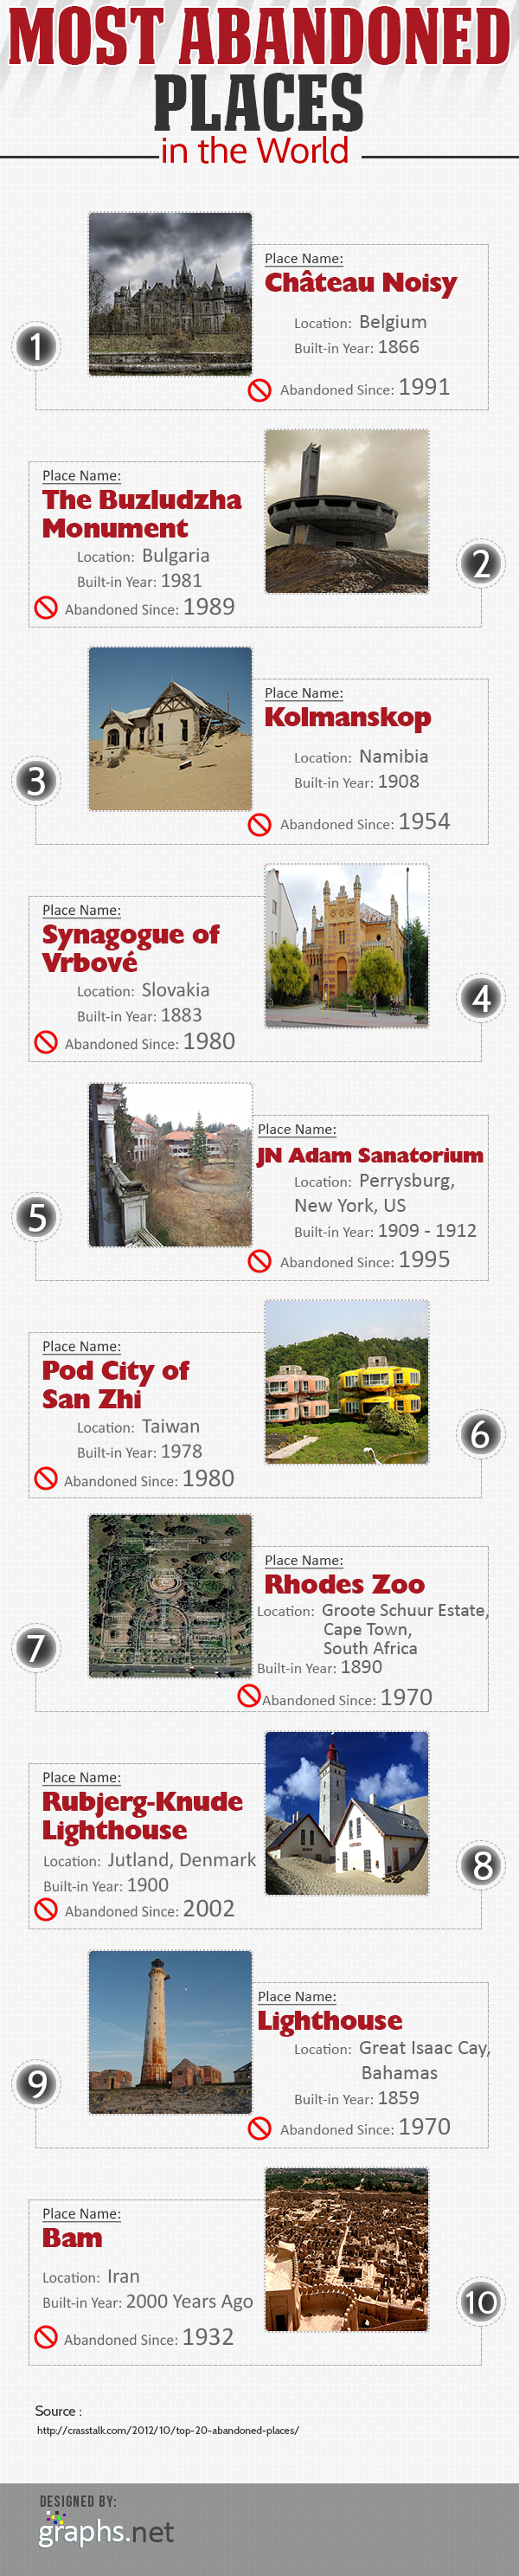 Most-Abandoned-Places-in-the-World